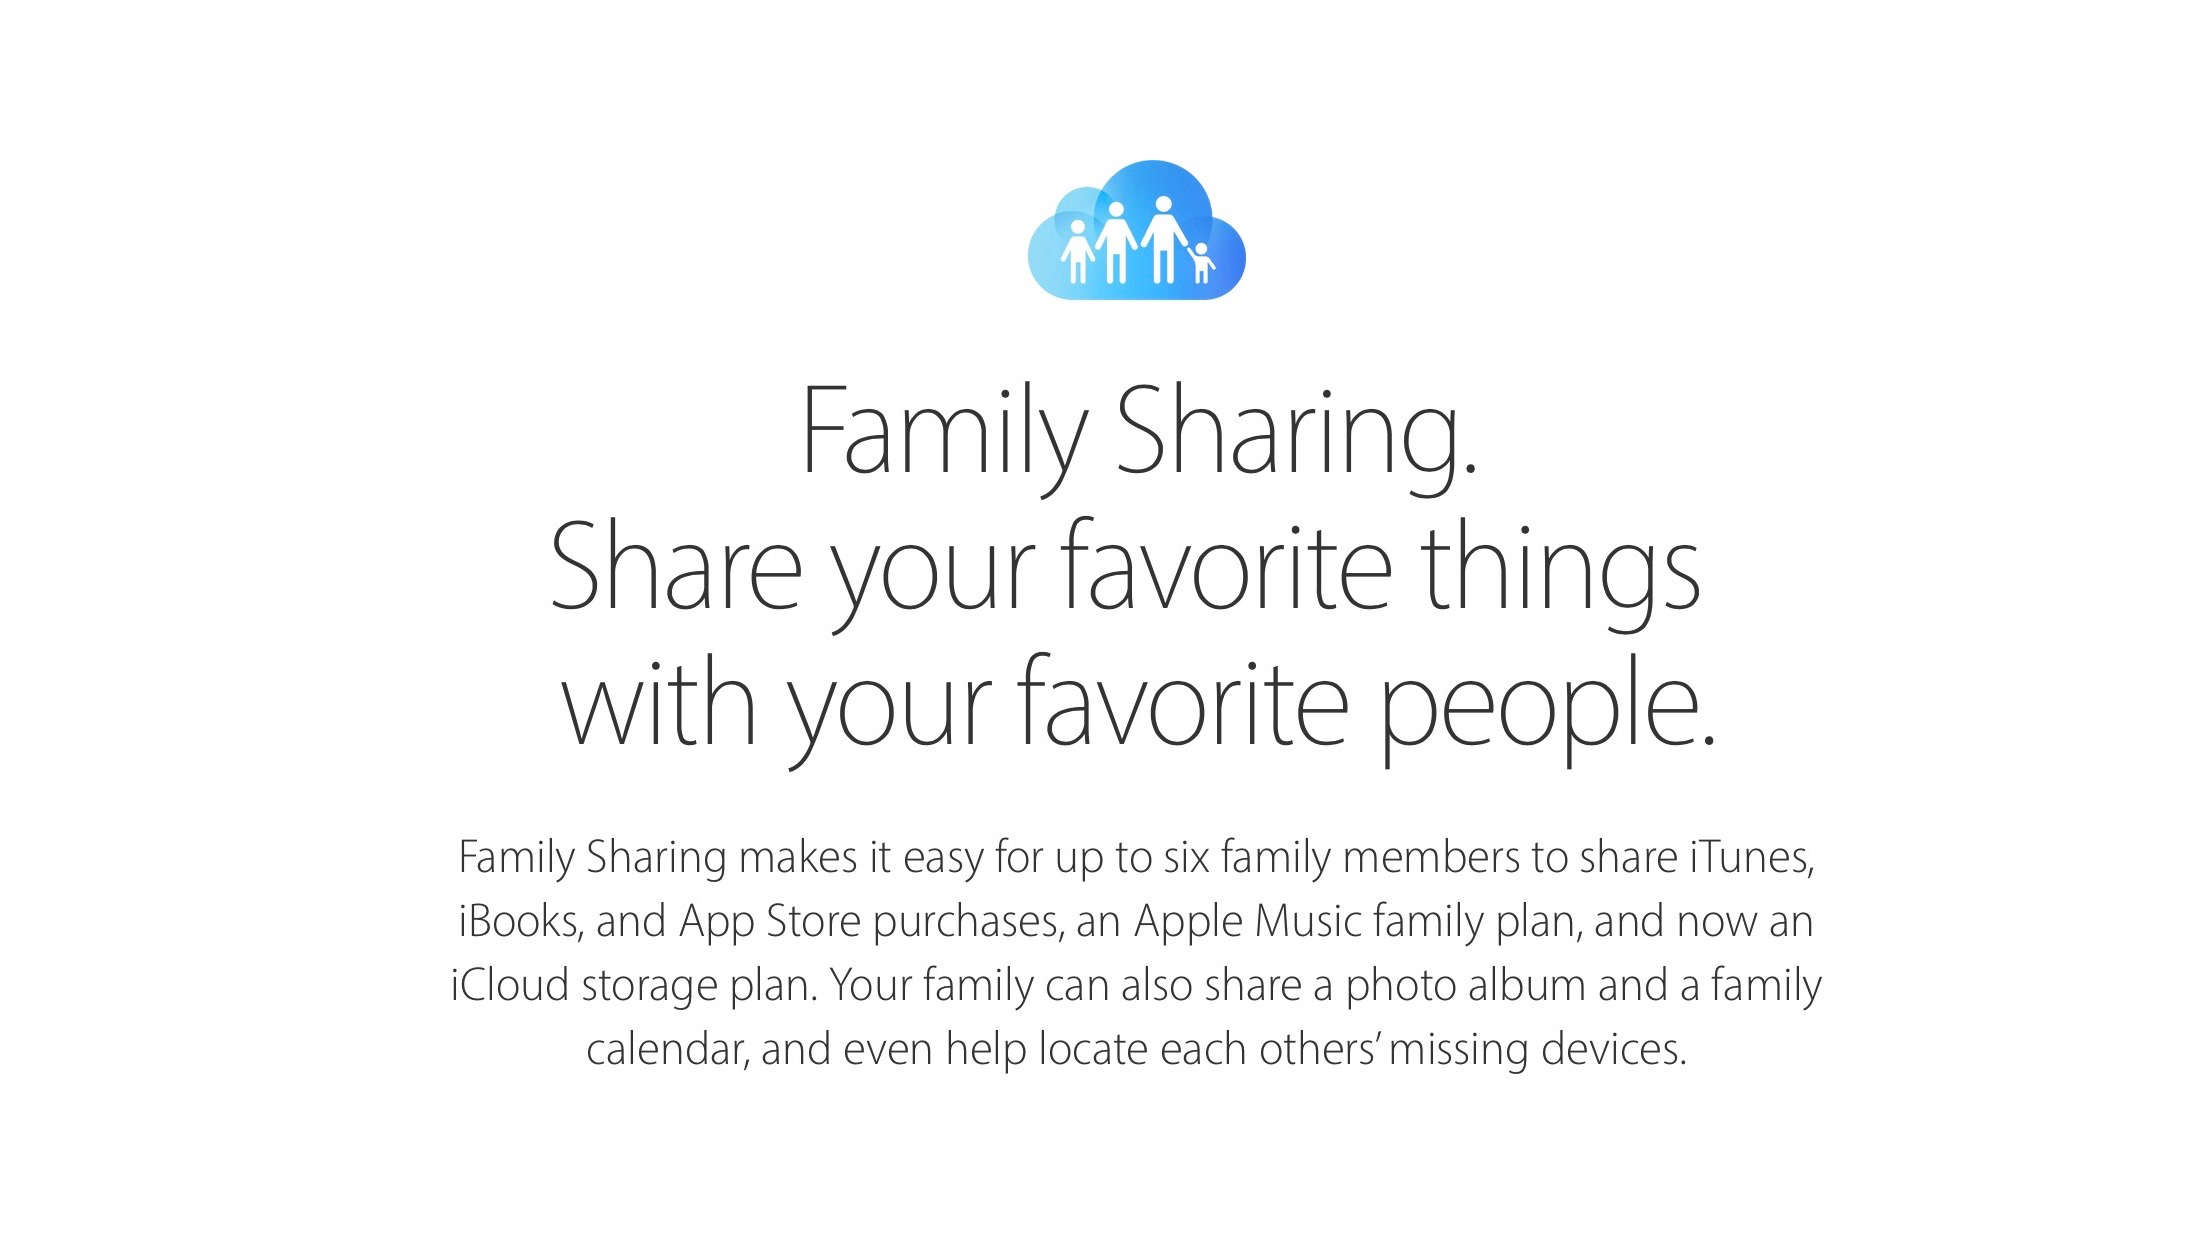 How To Share One ICloud Storage Plan With Your Whole Family